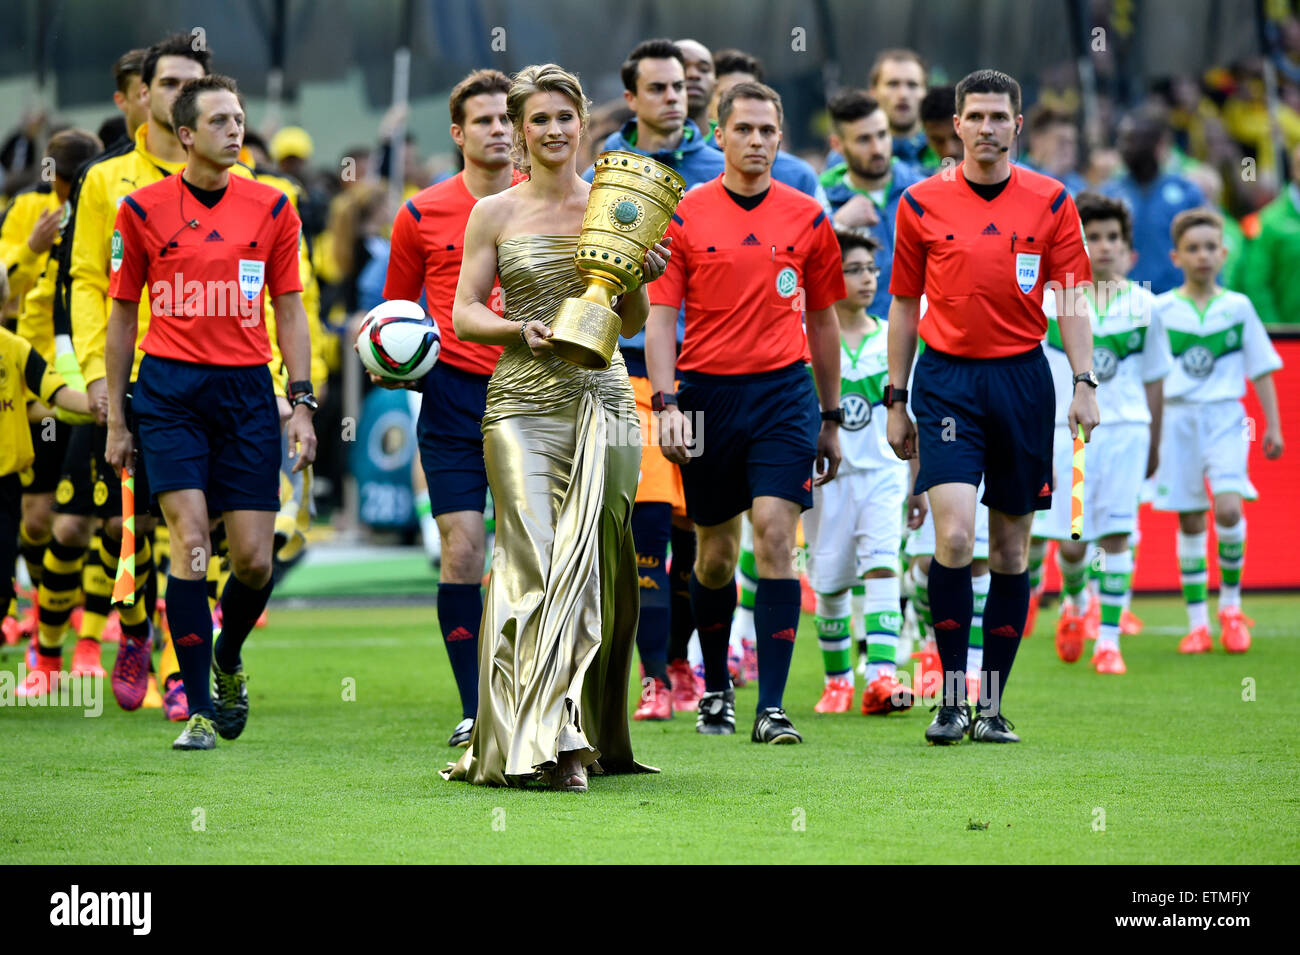 DFB Cup final 2015, Britta Heidemann bringing trophy into stadium, referees and teams behind, Olympic Stadium, Berlin, - Stock Image